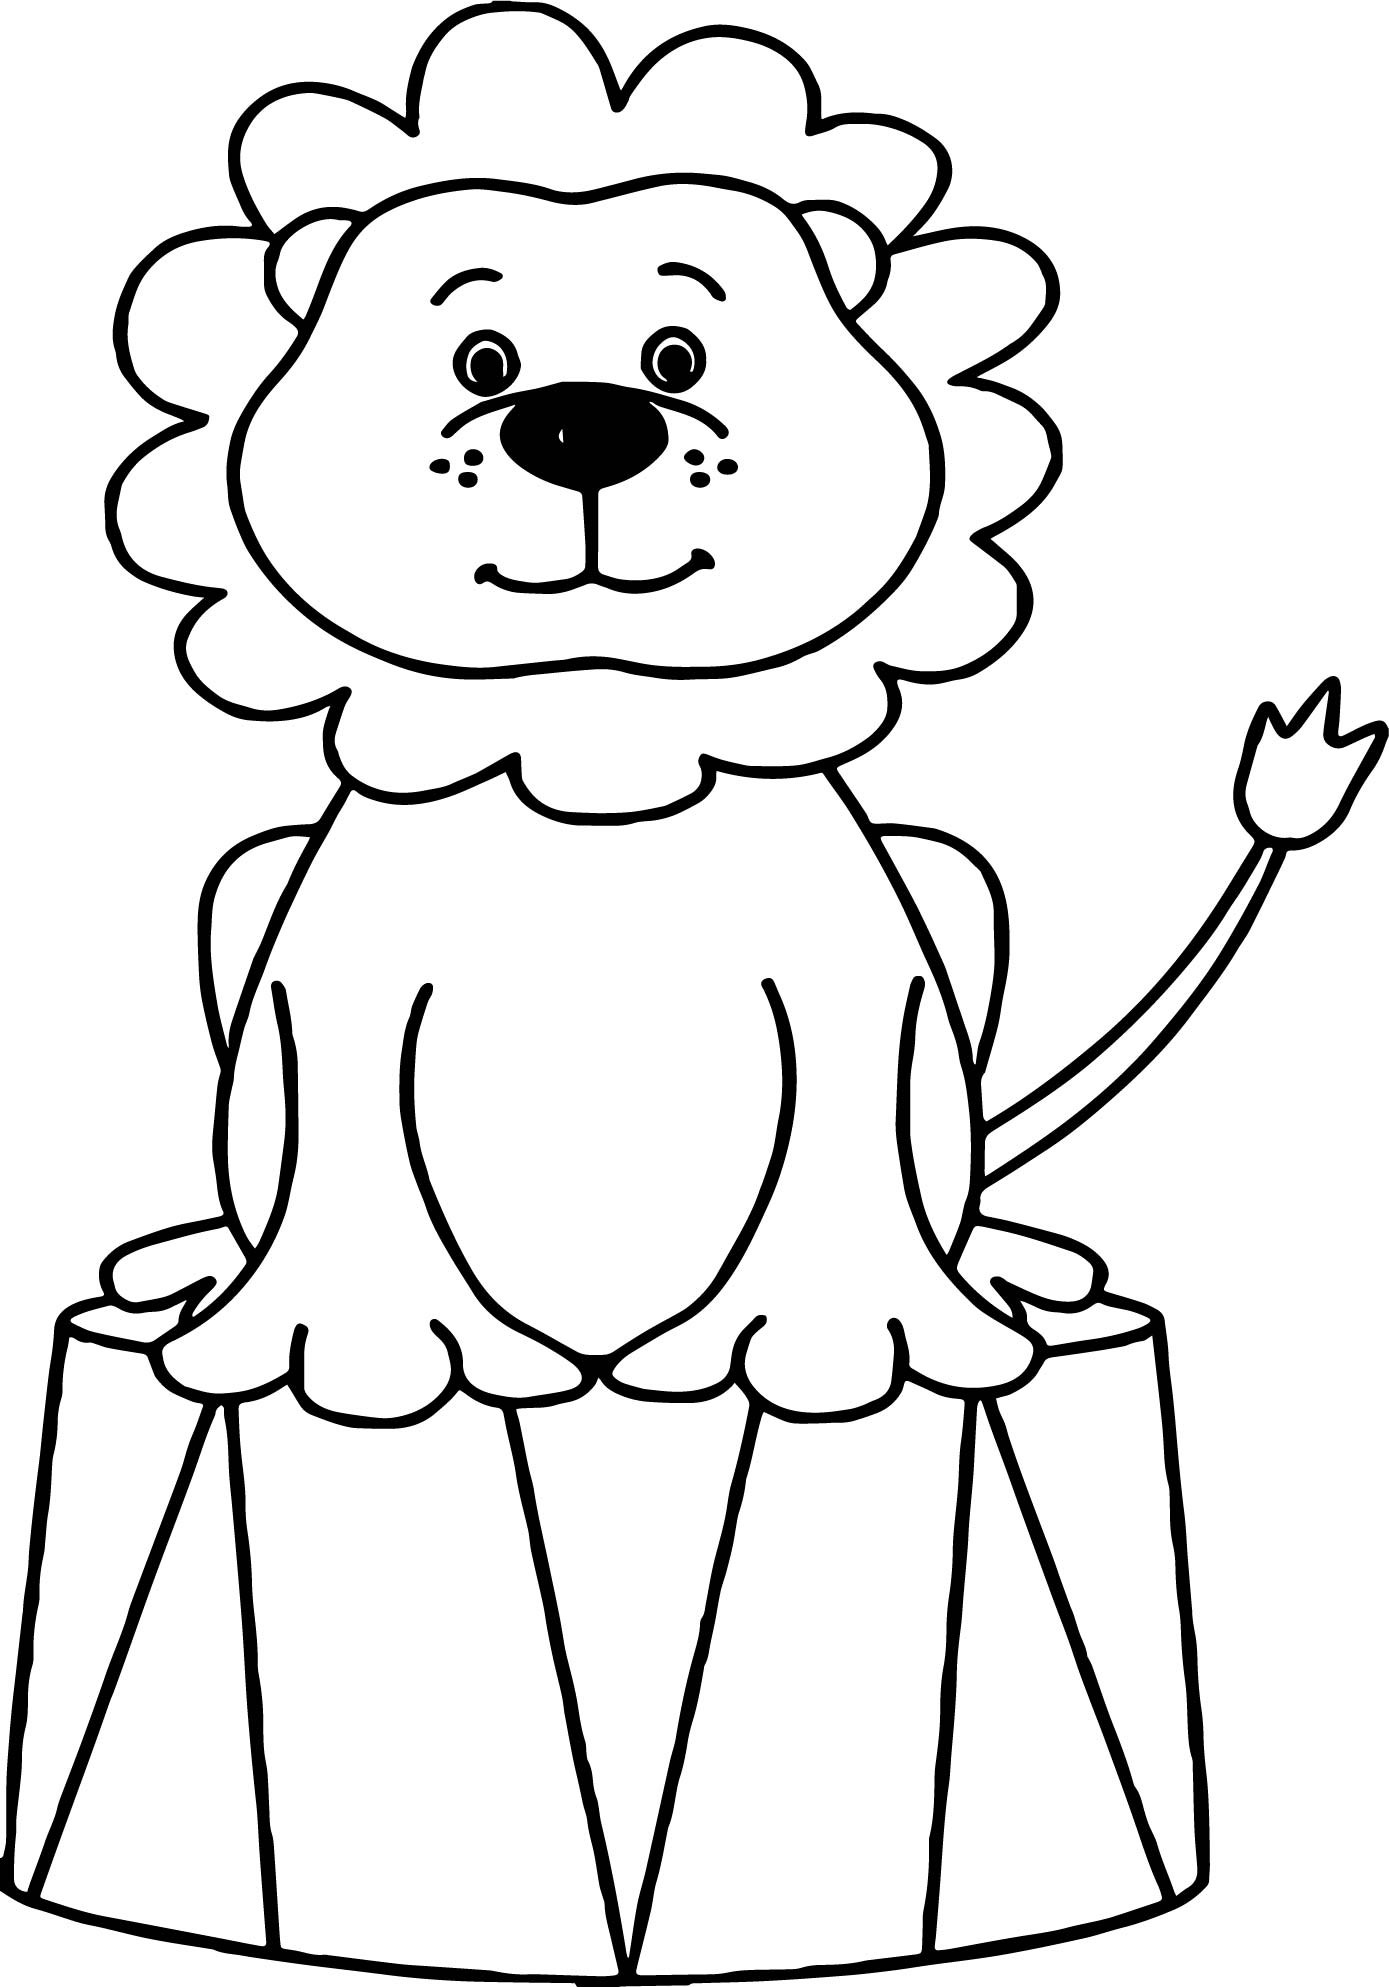 1389x1987 Circus Animals Coloring Pages Free Draw To Color